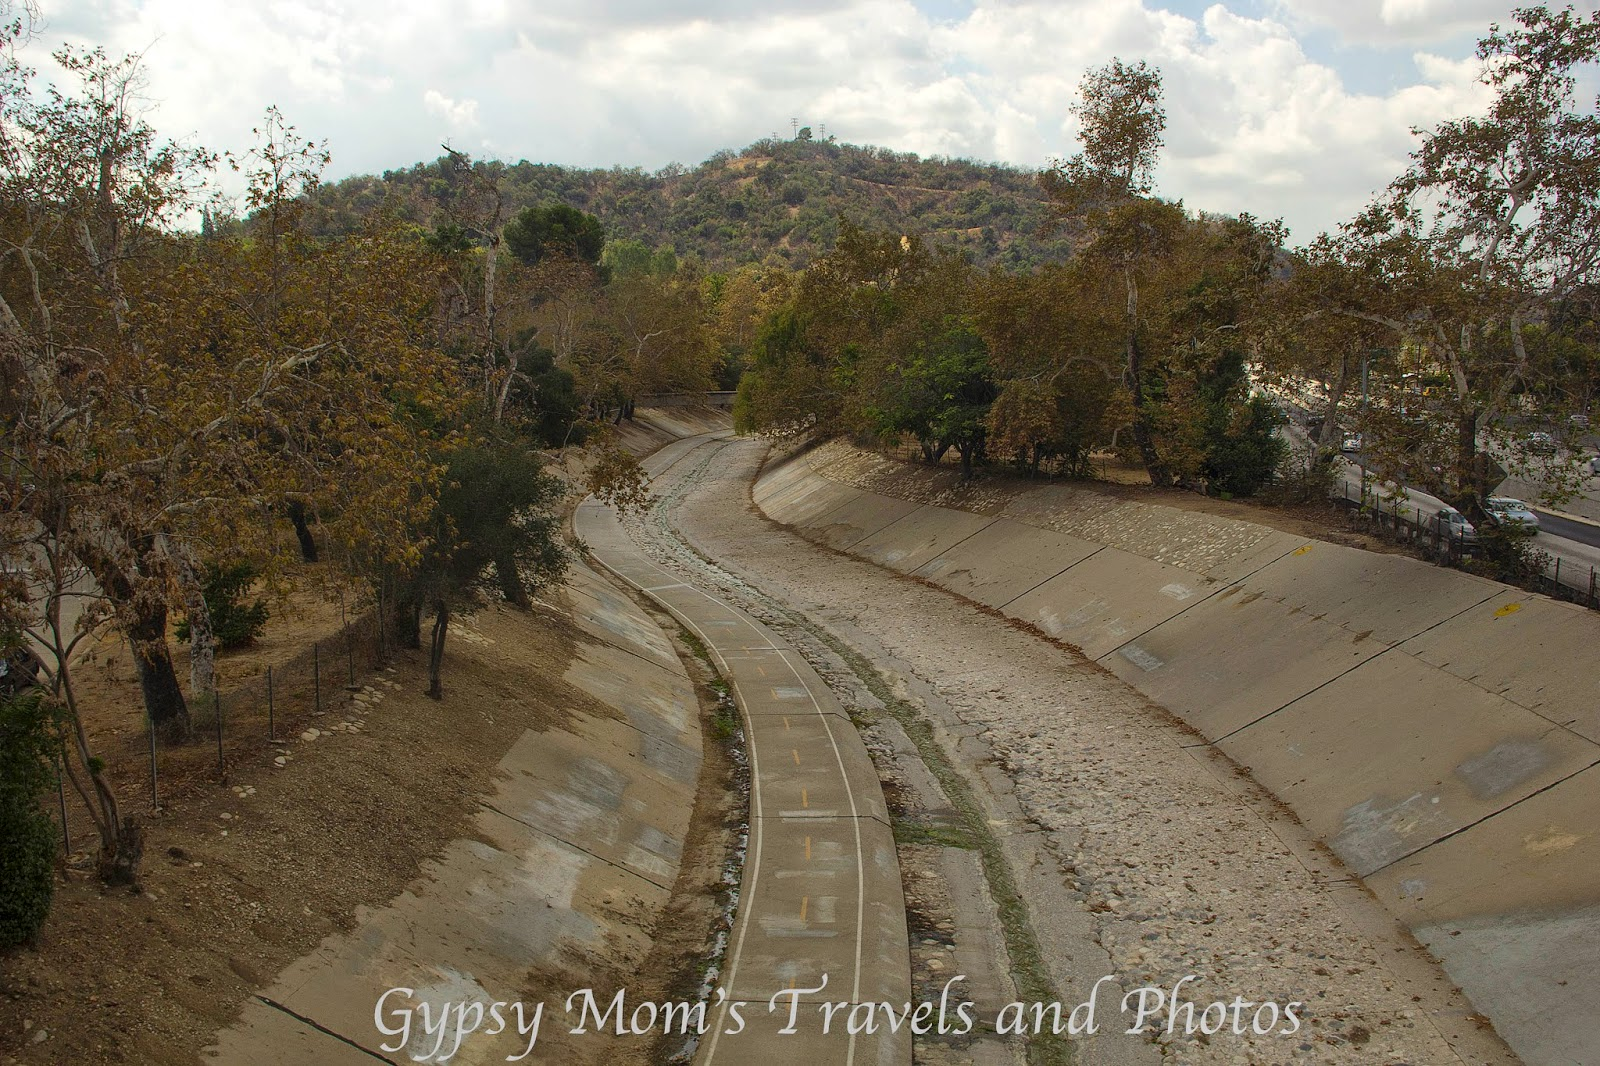 Arroyo Seco means Dry River and there is a bicycle path